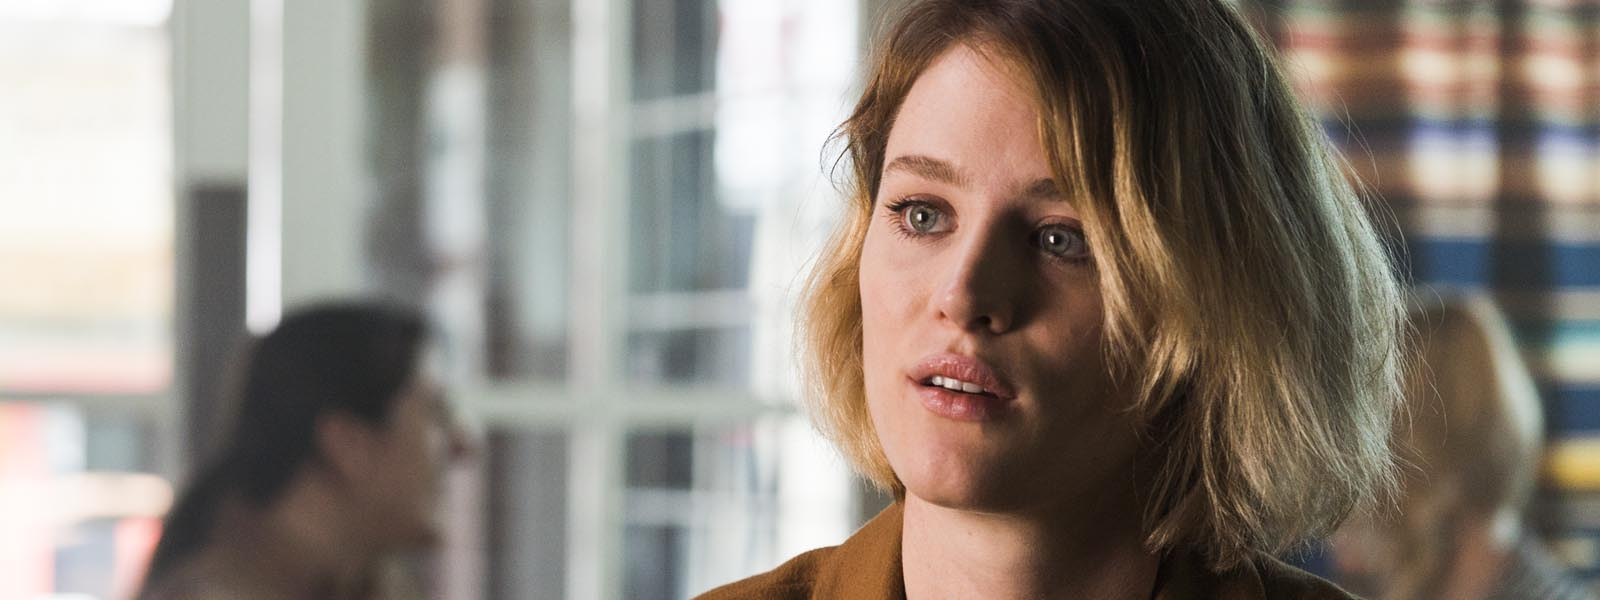 halt-and-catch-fire-post-301-cameron-howe-mackenzie-davis-800×600